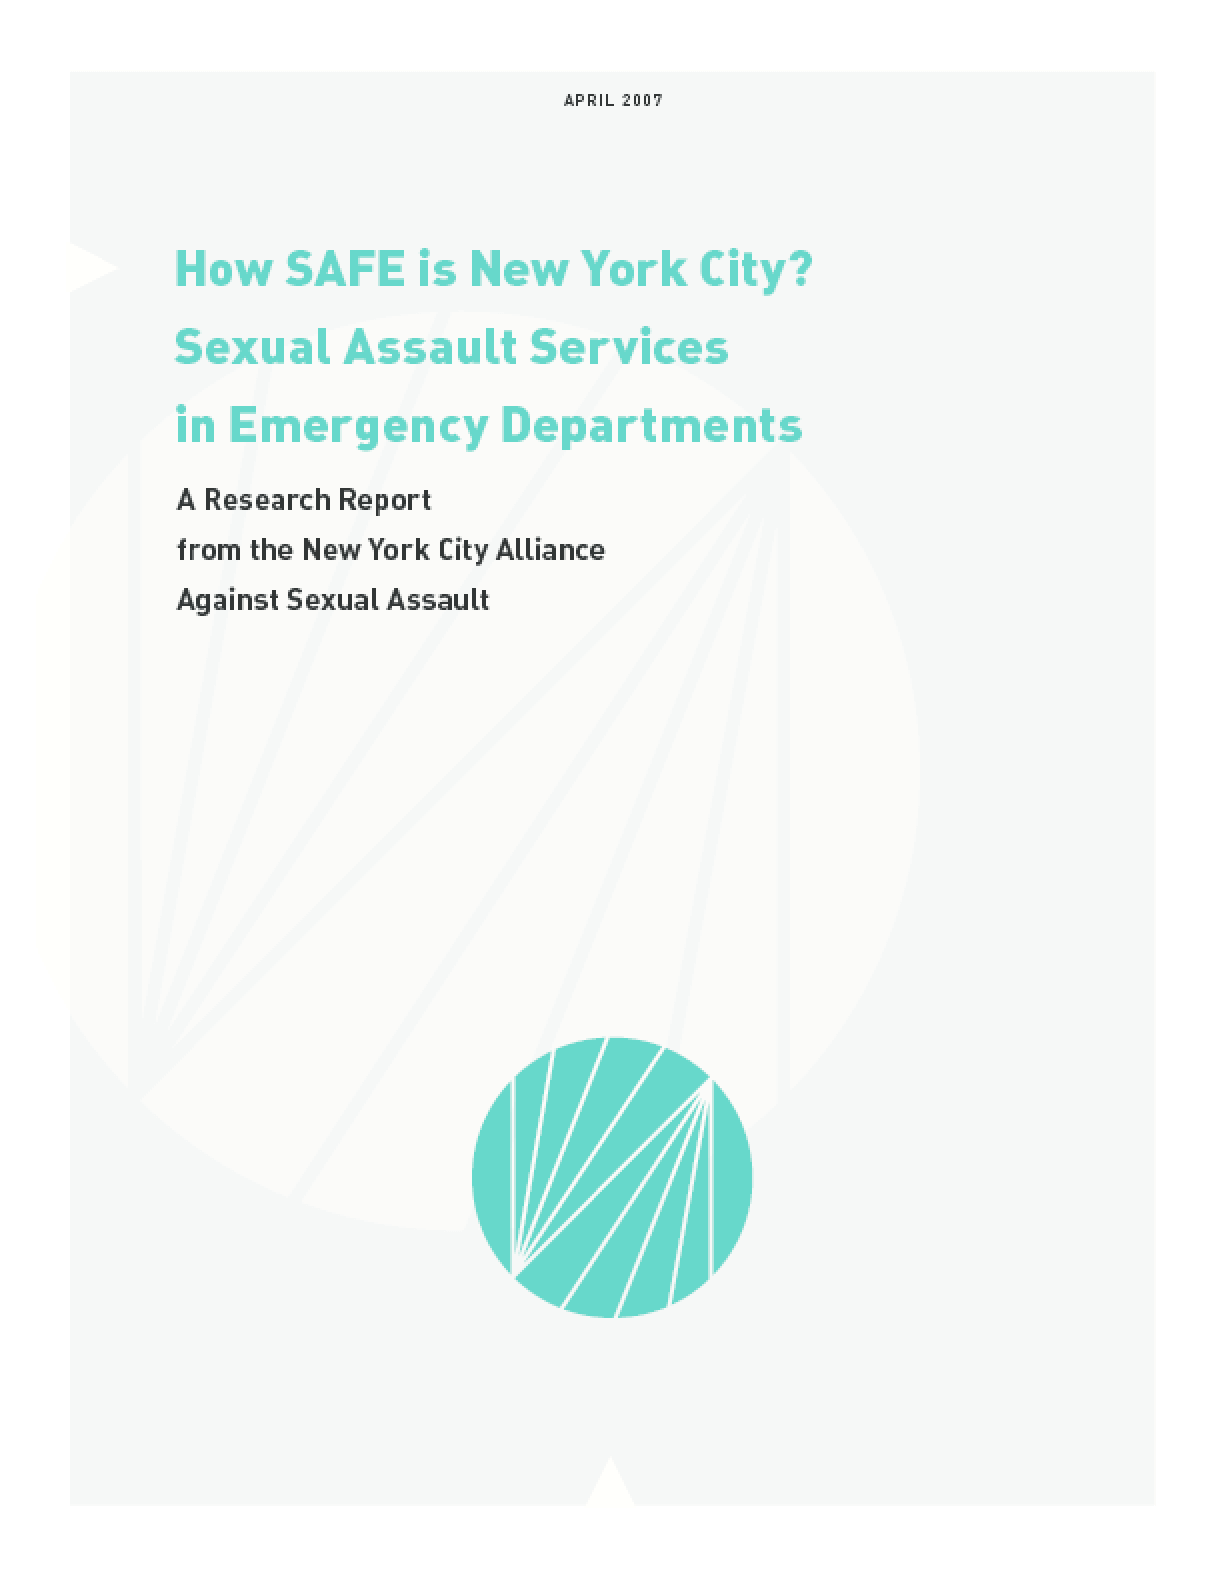 How SAFE is New York City? Sexual Assault Services in Emergency Departments